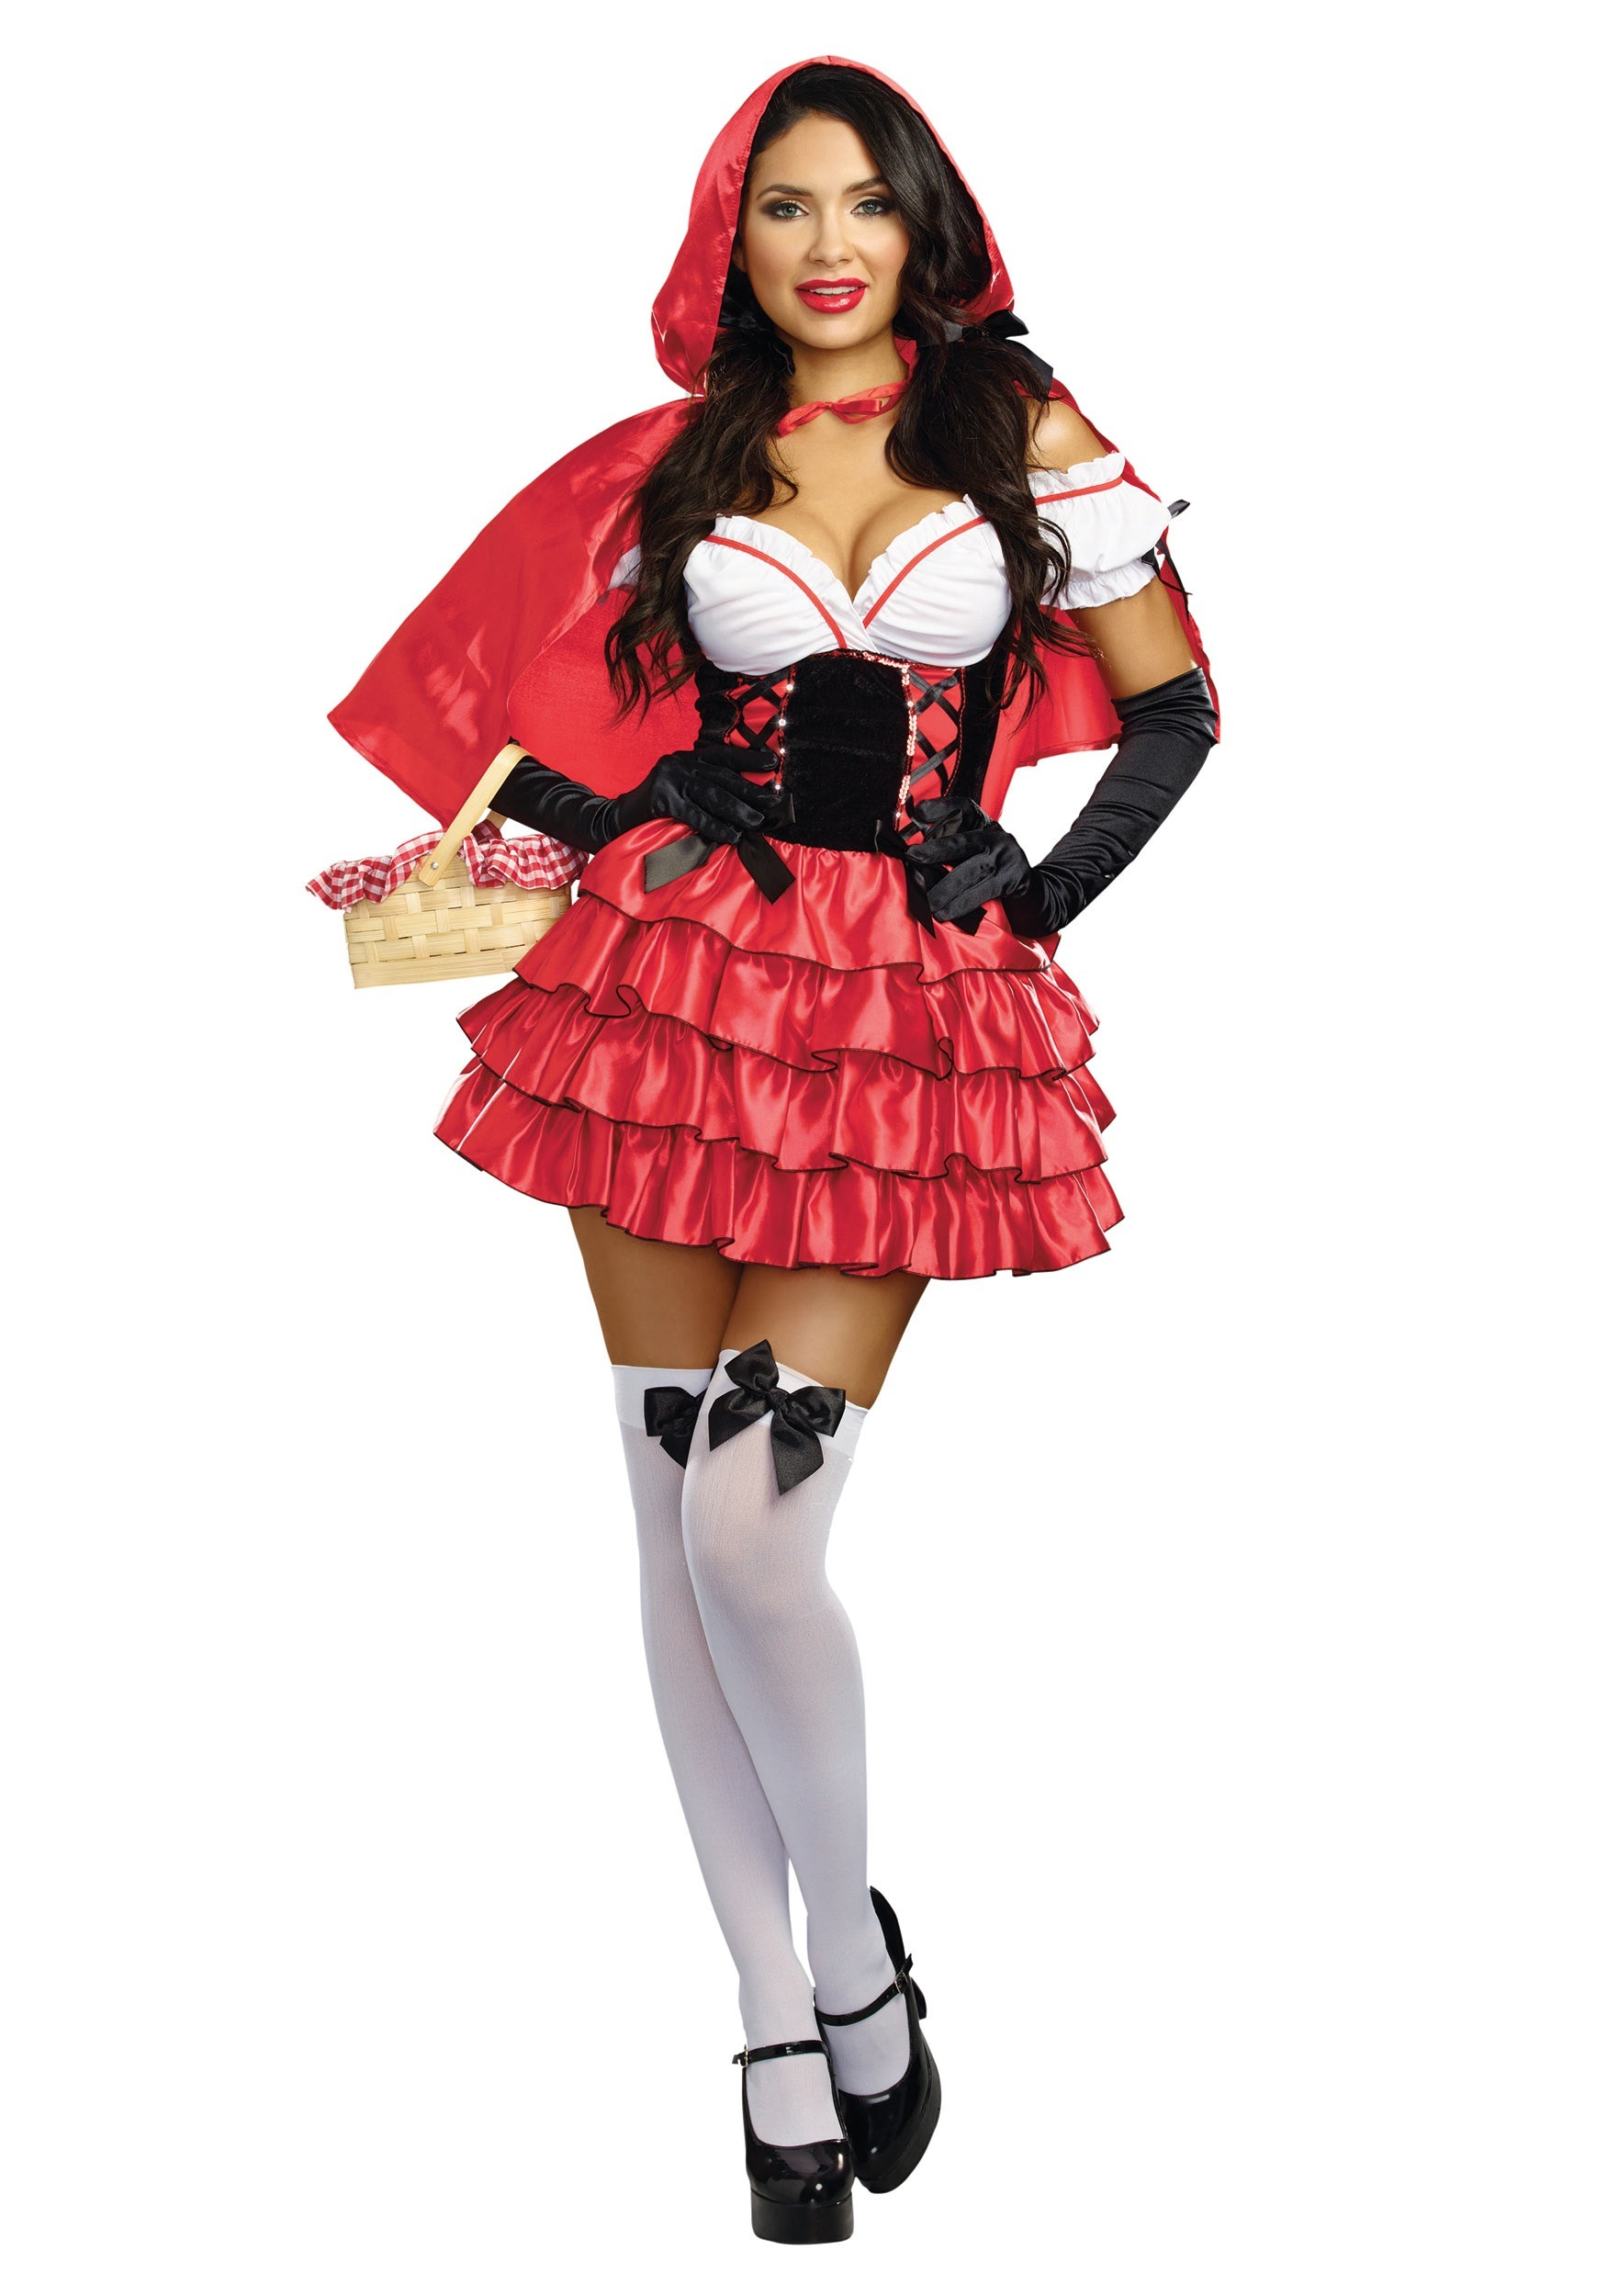 Women's Ruffled Red Riding Hood Costume